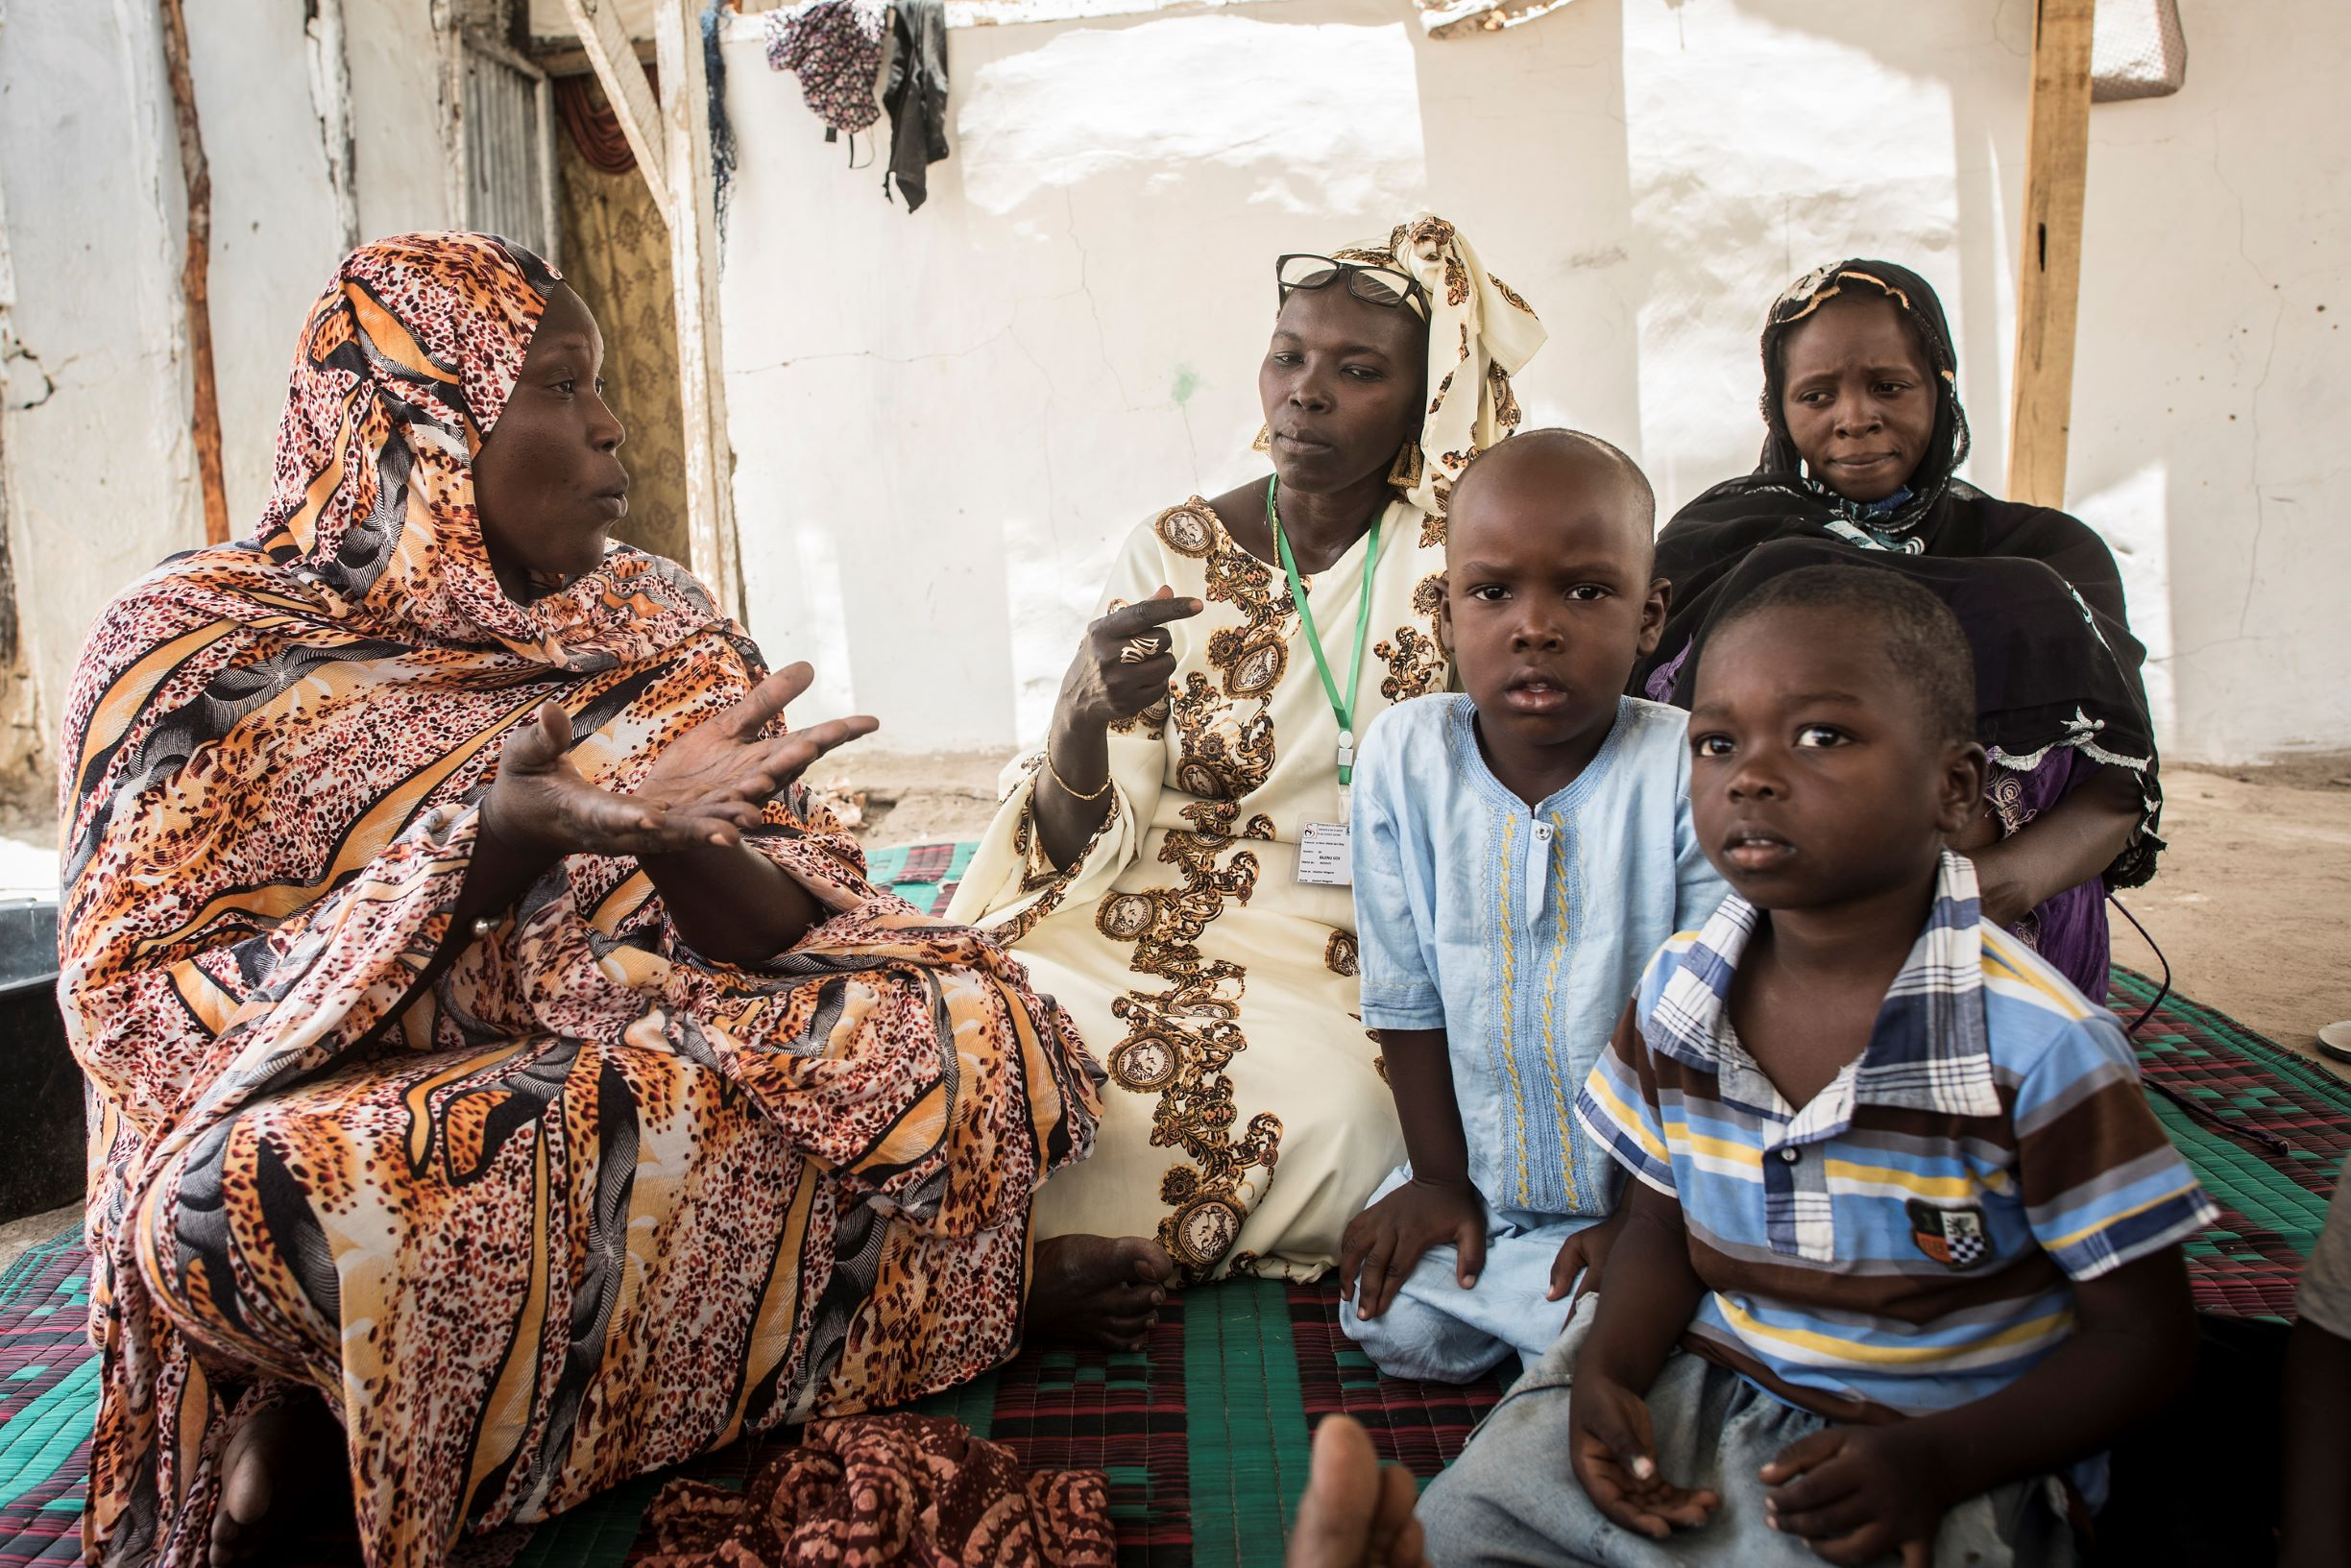 Access to maternal, adolescent and child health services in Senegal: mobilization of the Bajenu Gox, neighborhood aunties